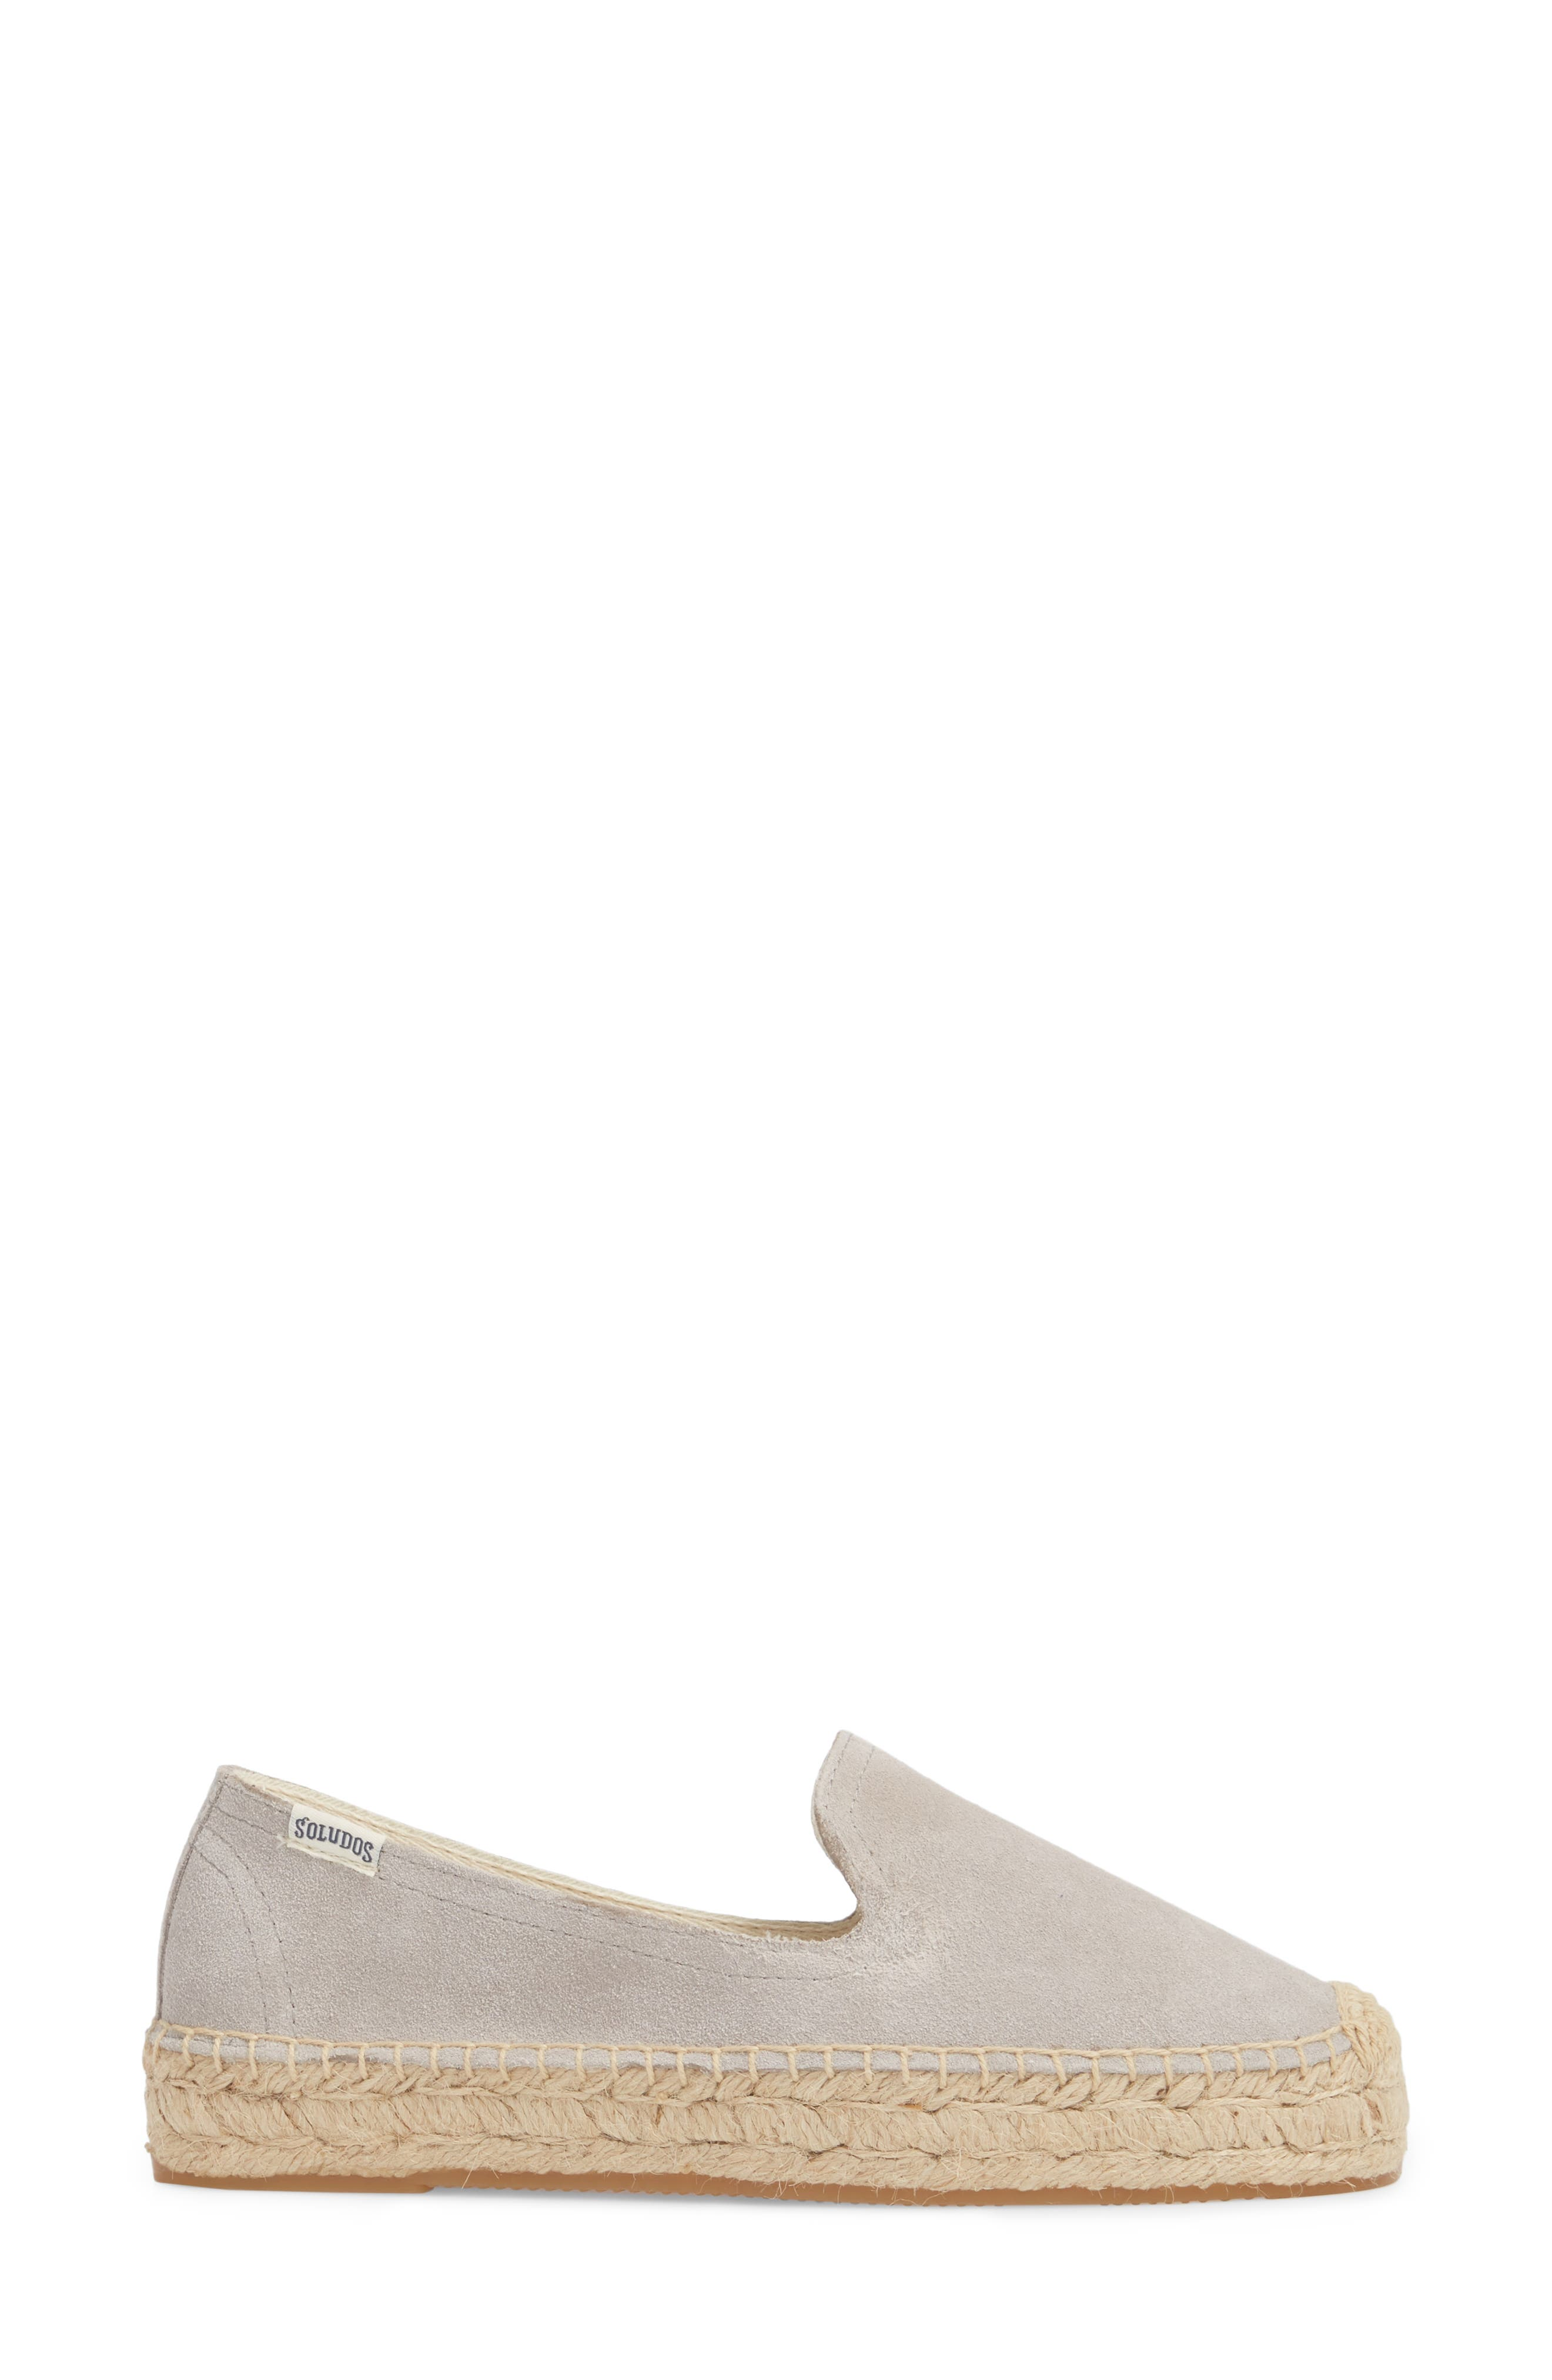 Espadrille Loafer,                             Alternate thumbnail 3, color,                             STONE